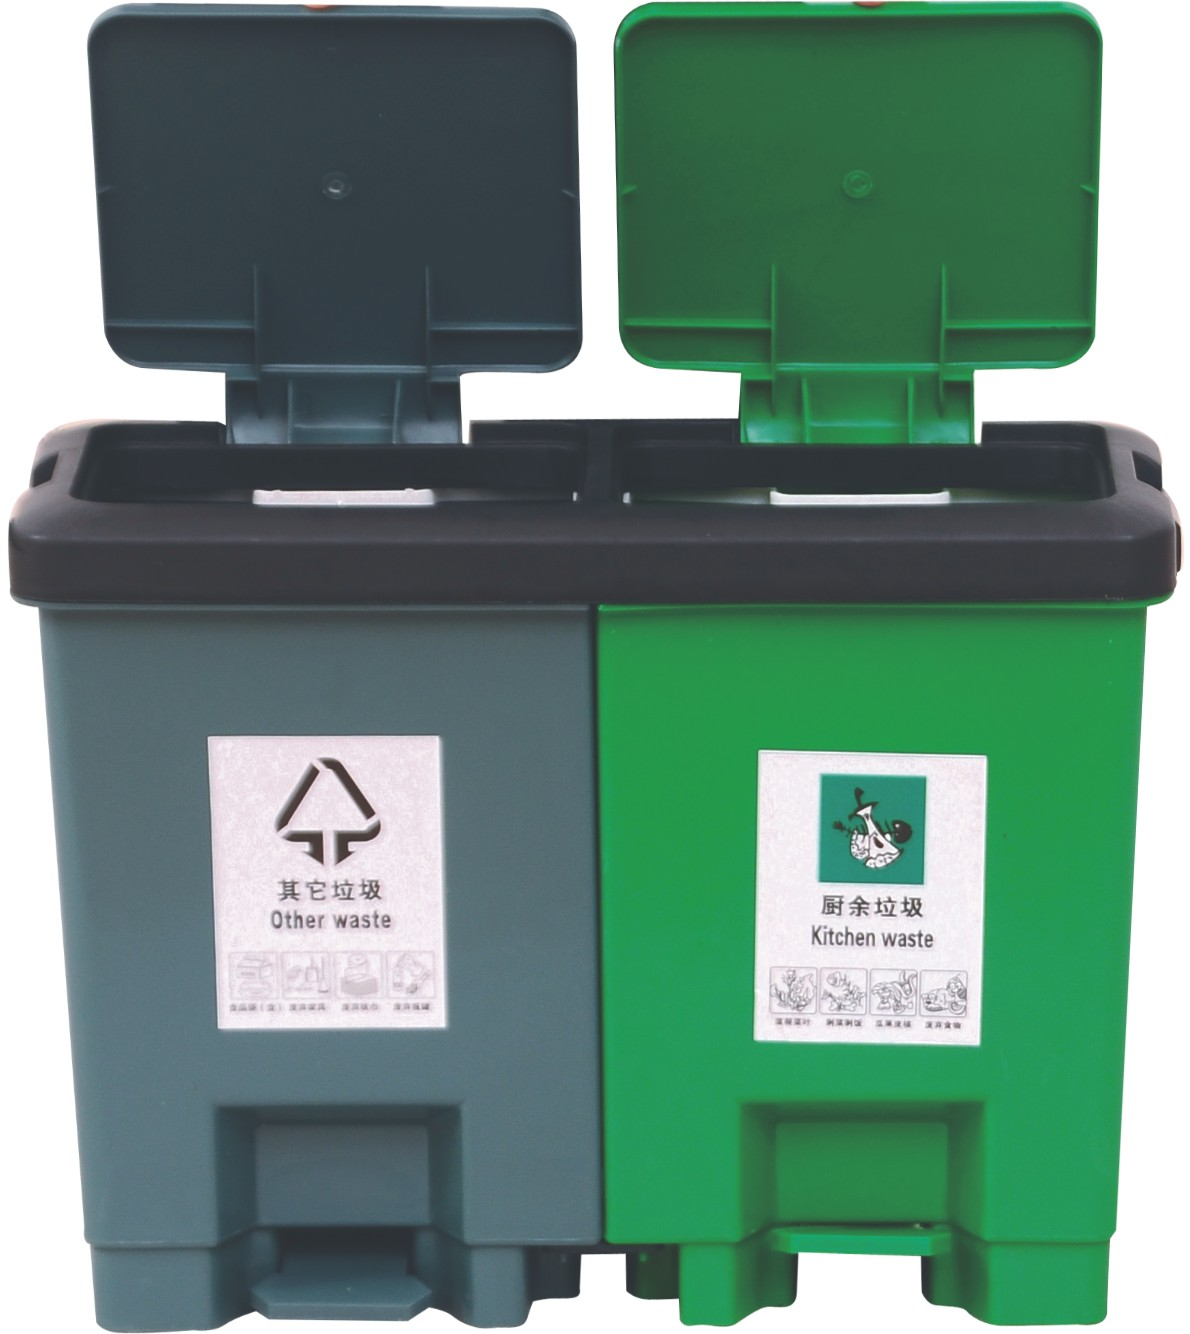 Replacement Kitchen Waste Bins  Litre Lids